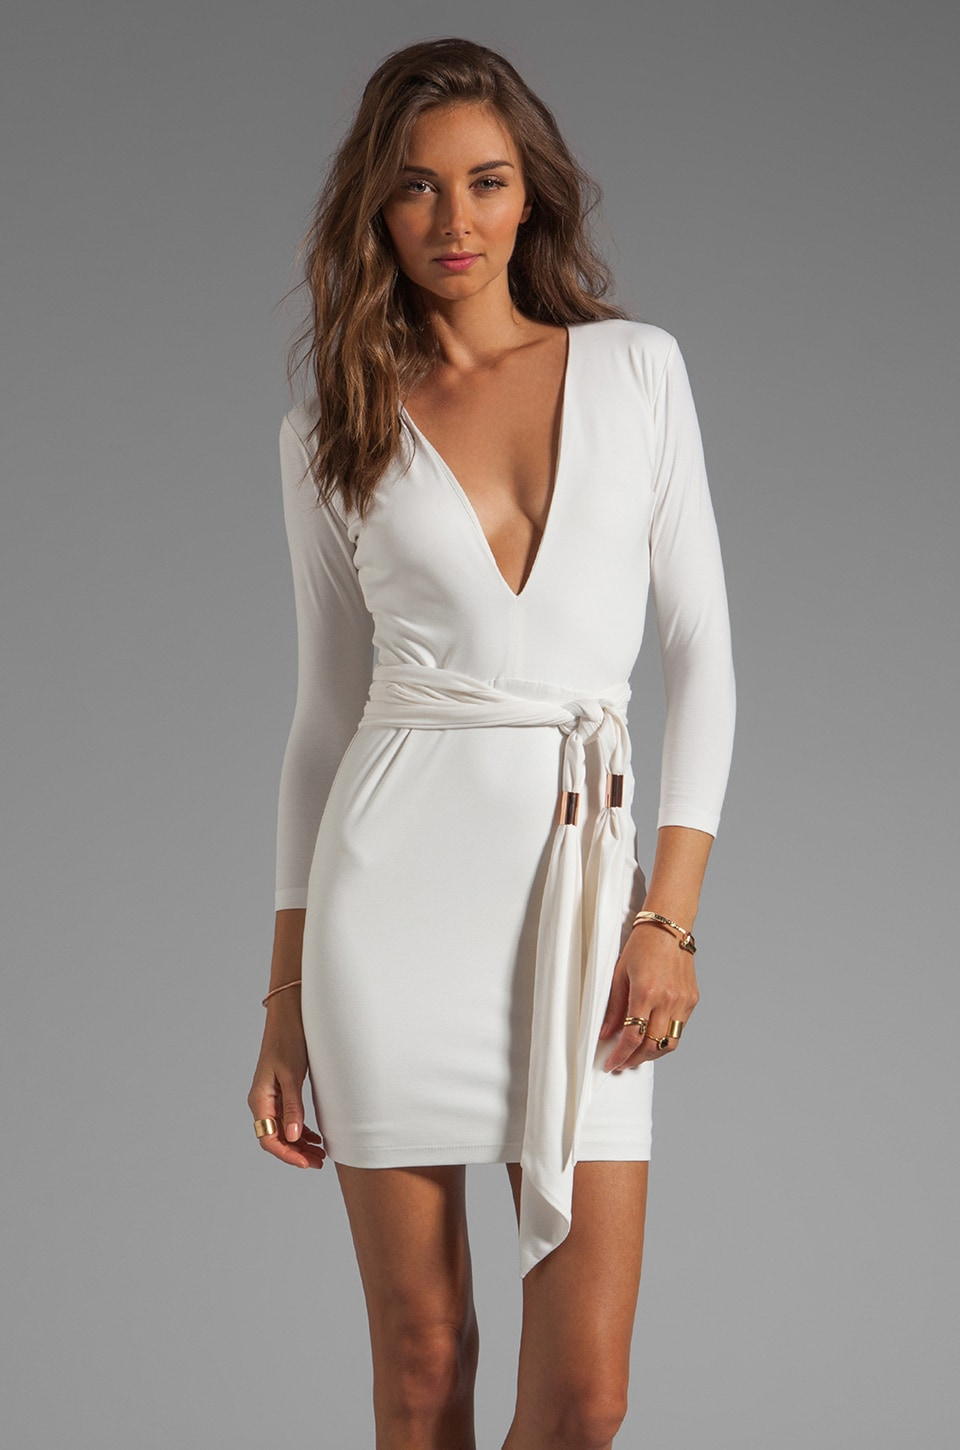 BEC&BRIDGE Exclusive Jaguar Long Sleeve Dress with Tie in White